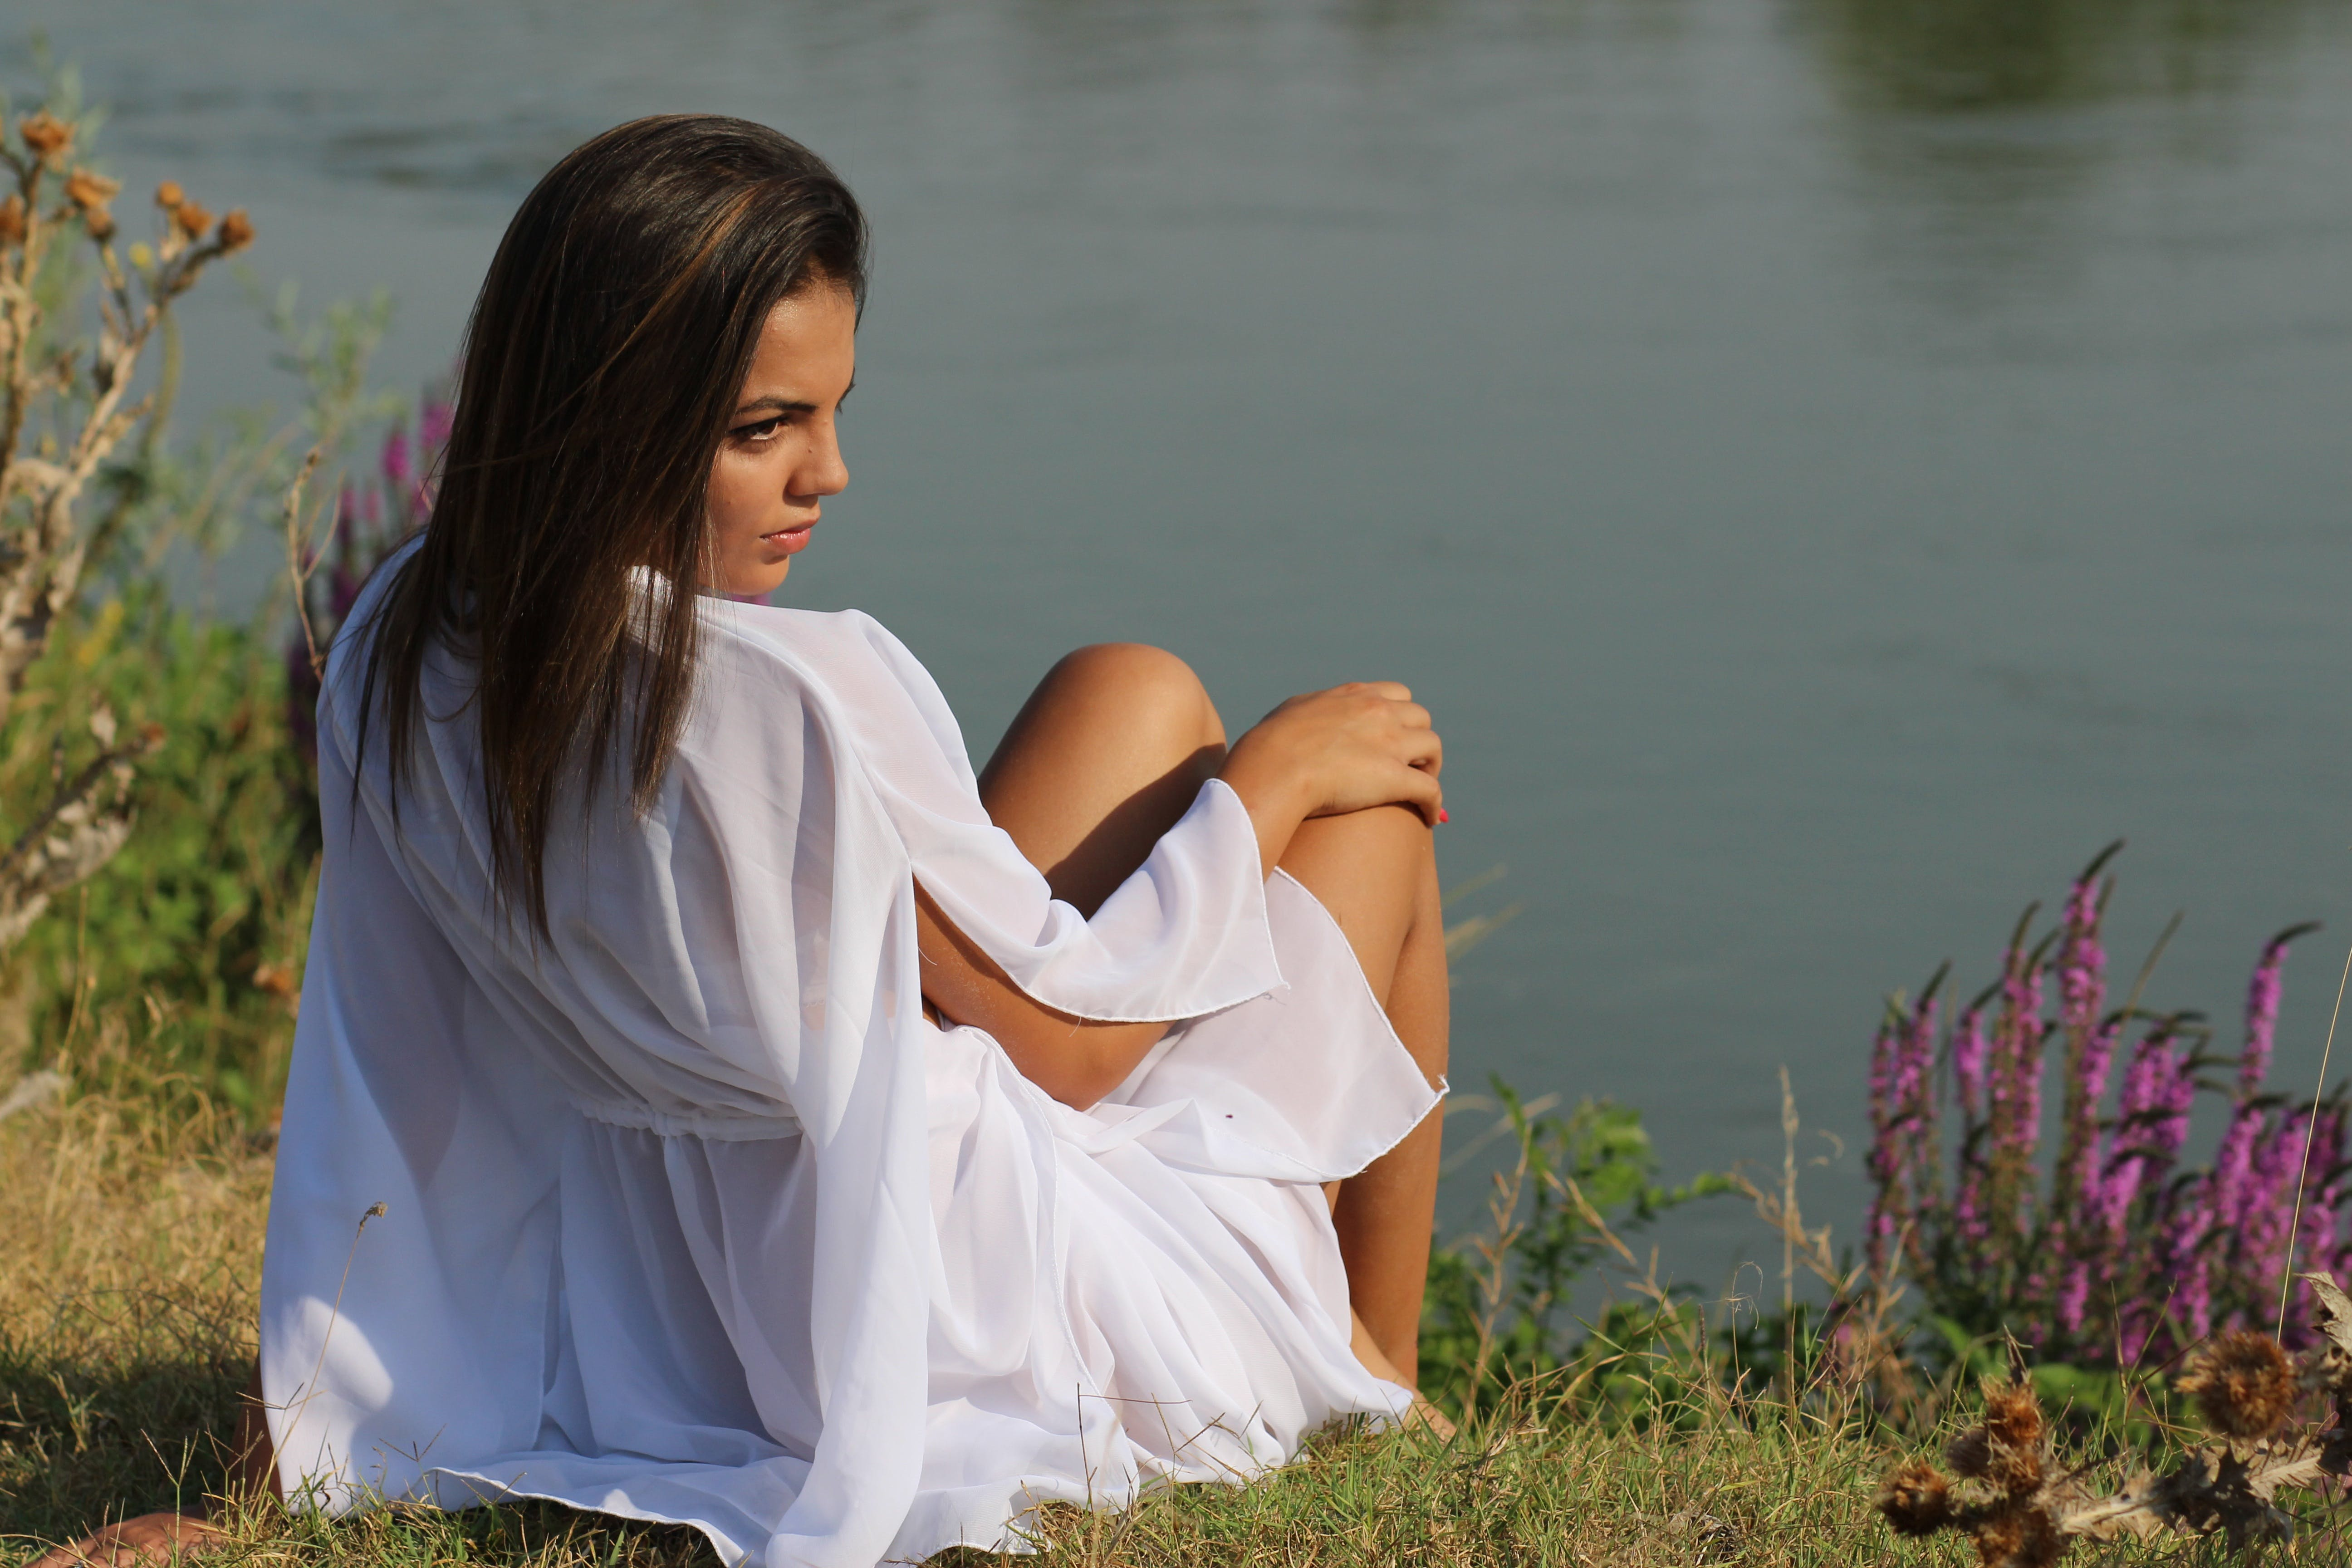 Woman Wearing White Sitting on Green Grass Near Body of Water